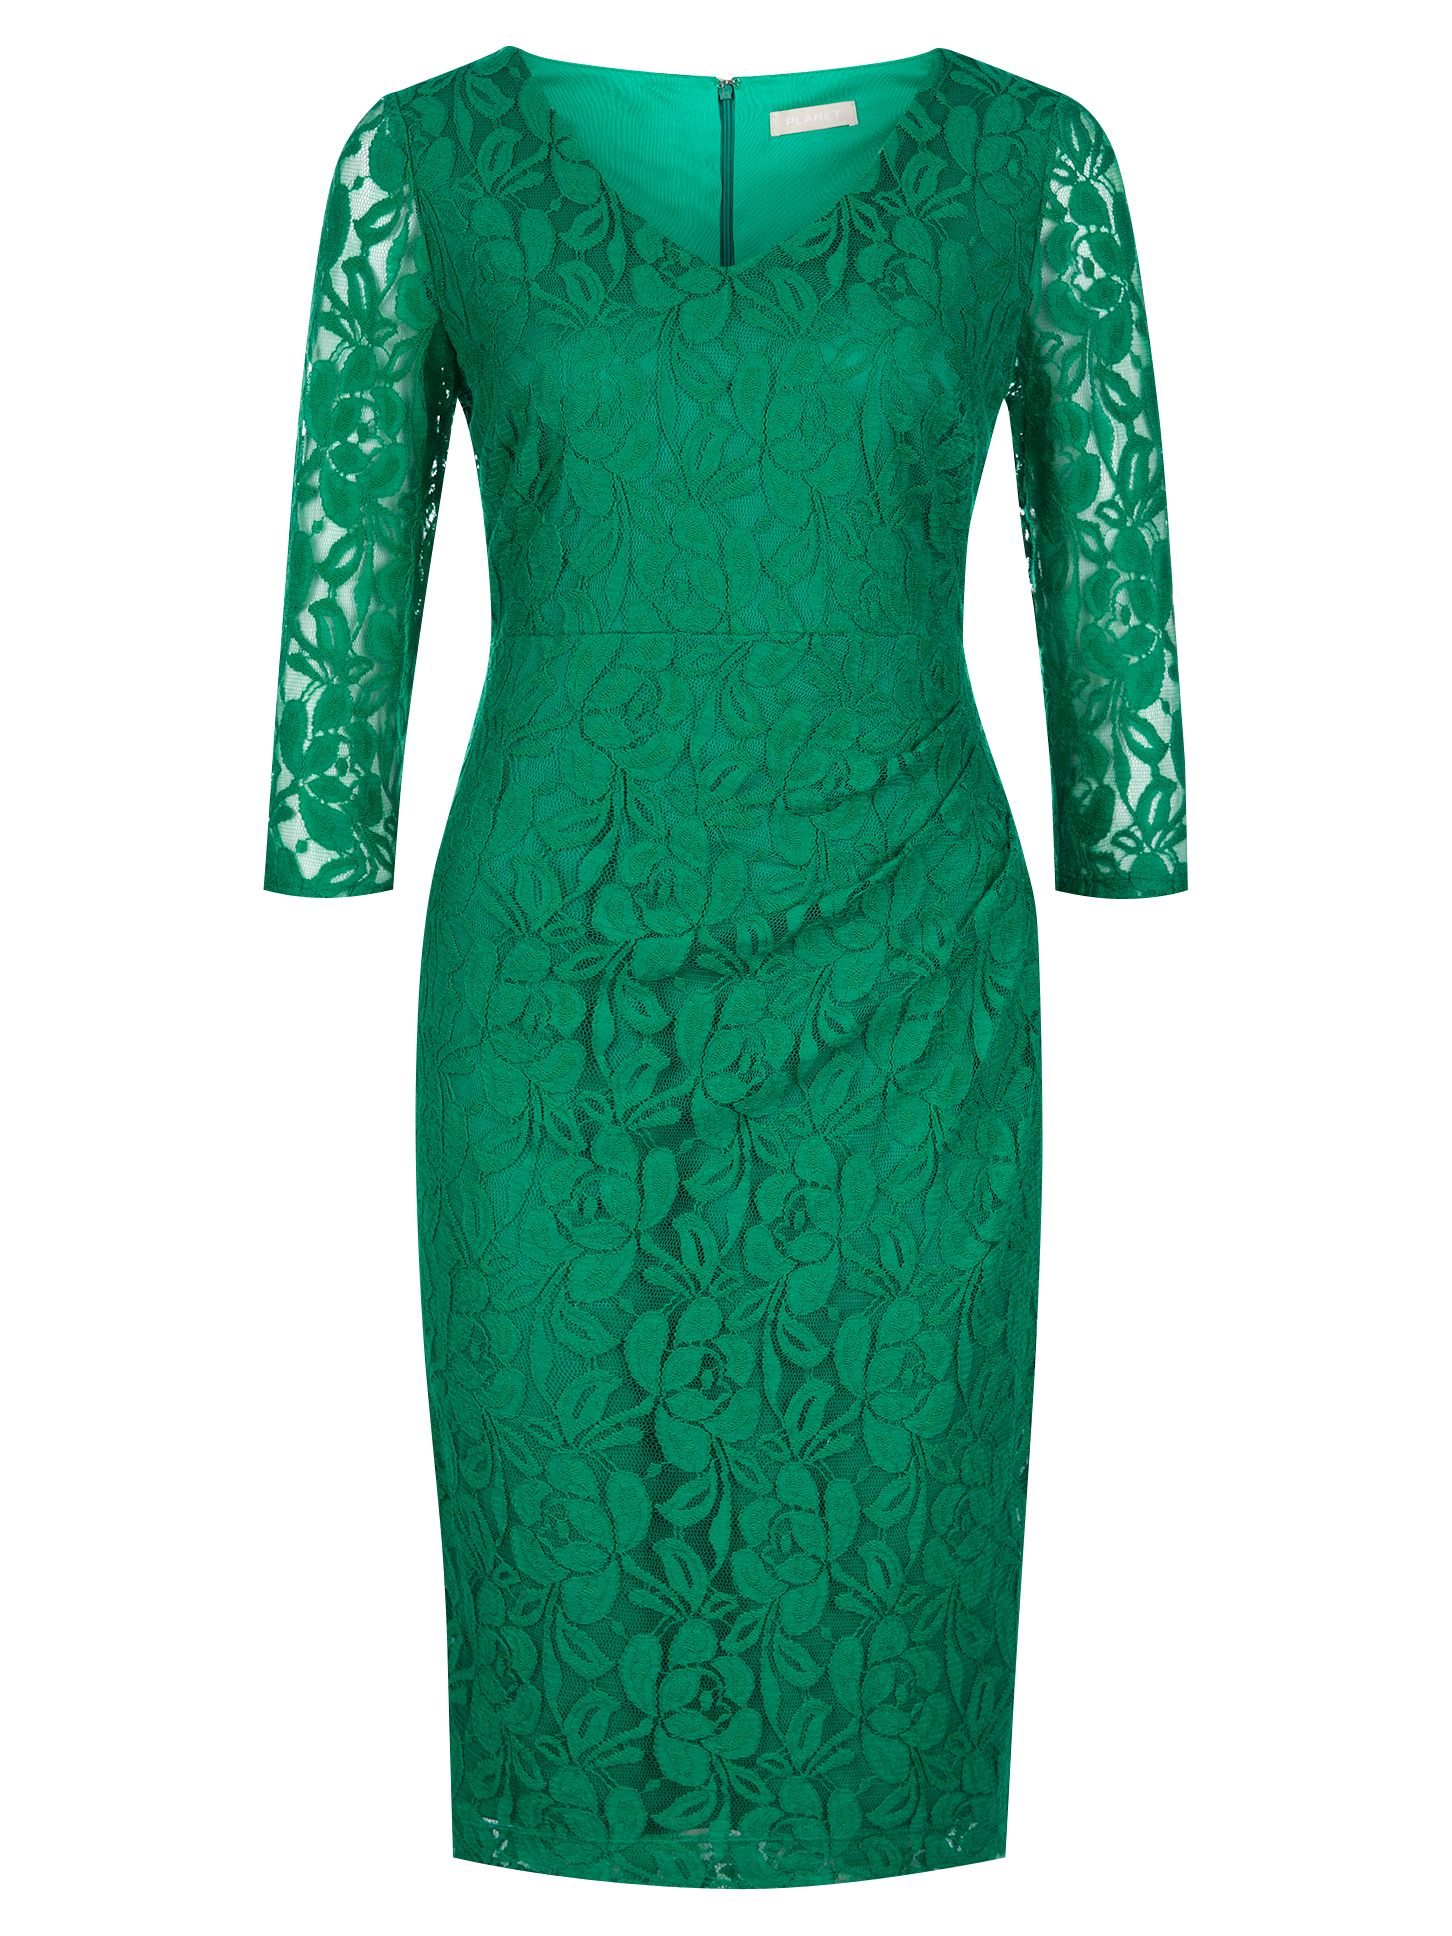 planet lace dress emerald, planet, lace, dress, emerald, 8|18|12|14|16|20, women, plus size, womens dresses, gifts, wedding, wedding clothing, female guests, special offers, womenswear offers, womens dresses offers, latest reductions, 1854470